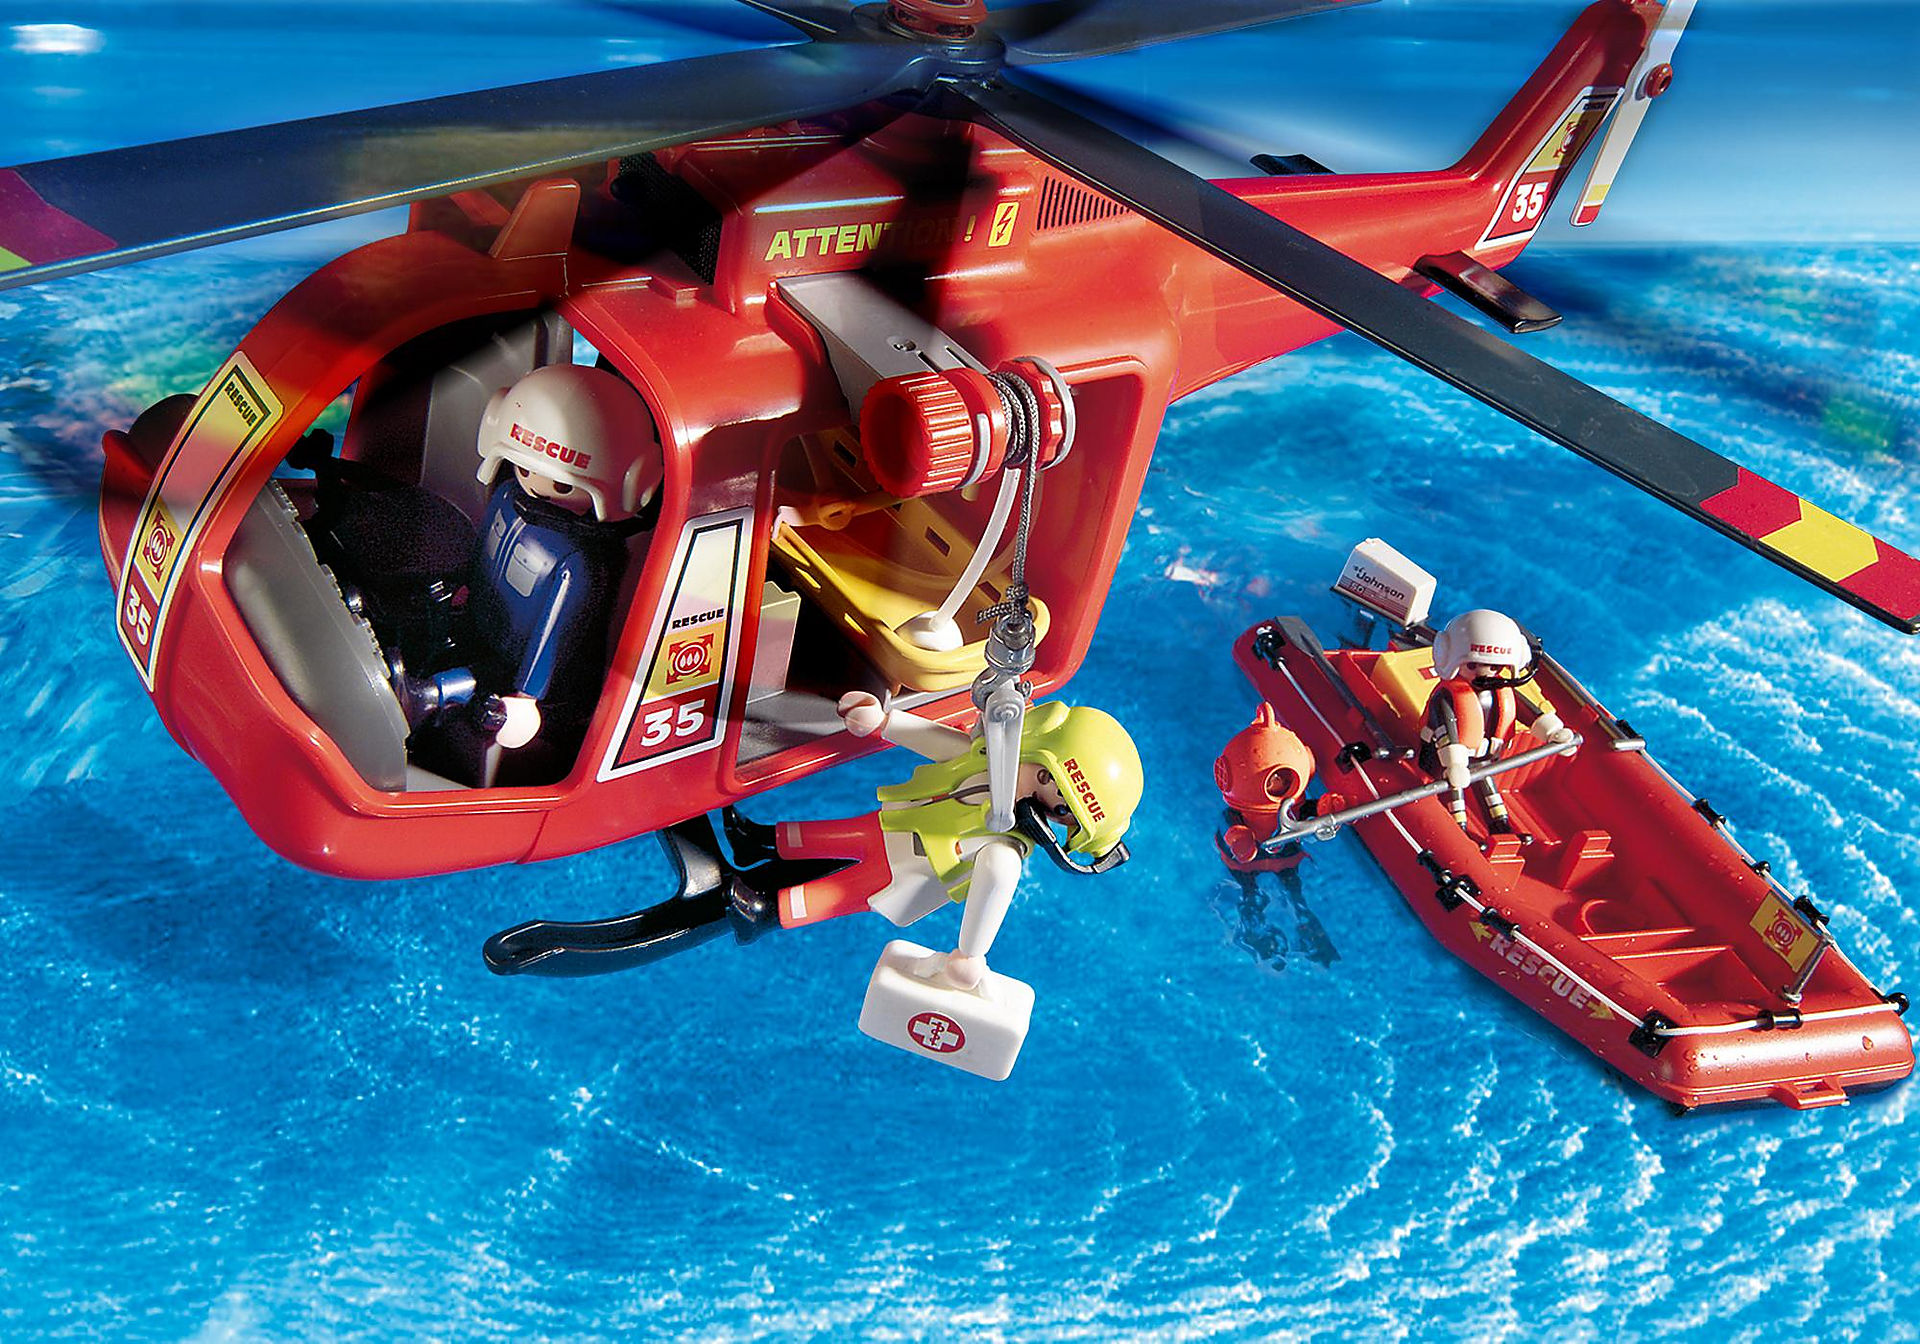 http://media.playmobil.com/i/playmobil/4428_product_extra3/SOS-Helikopter/Rettungsboot